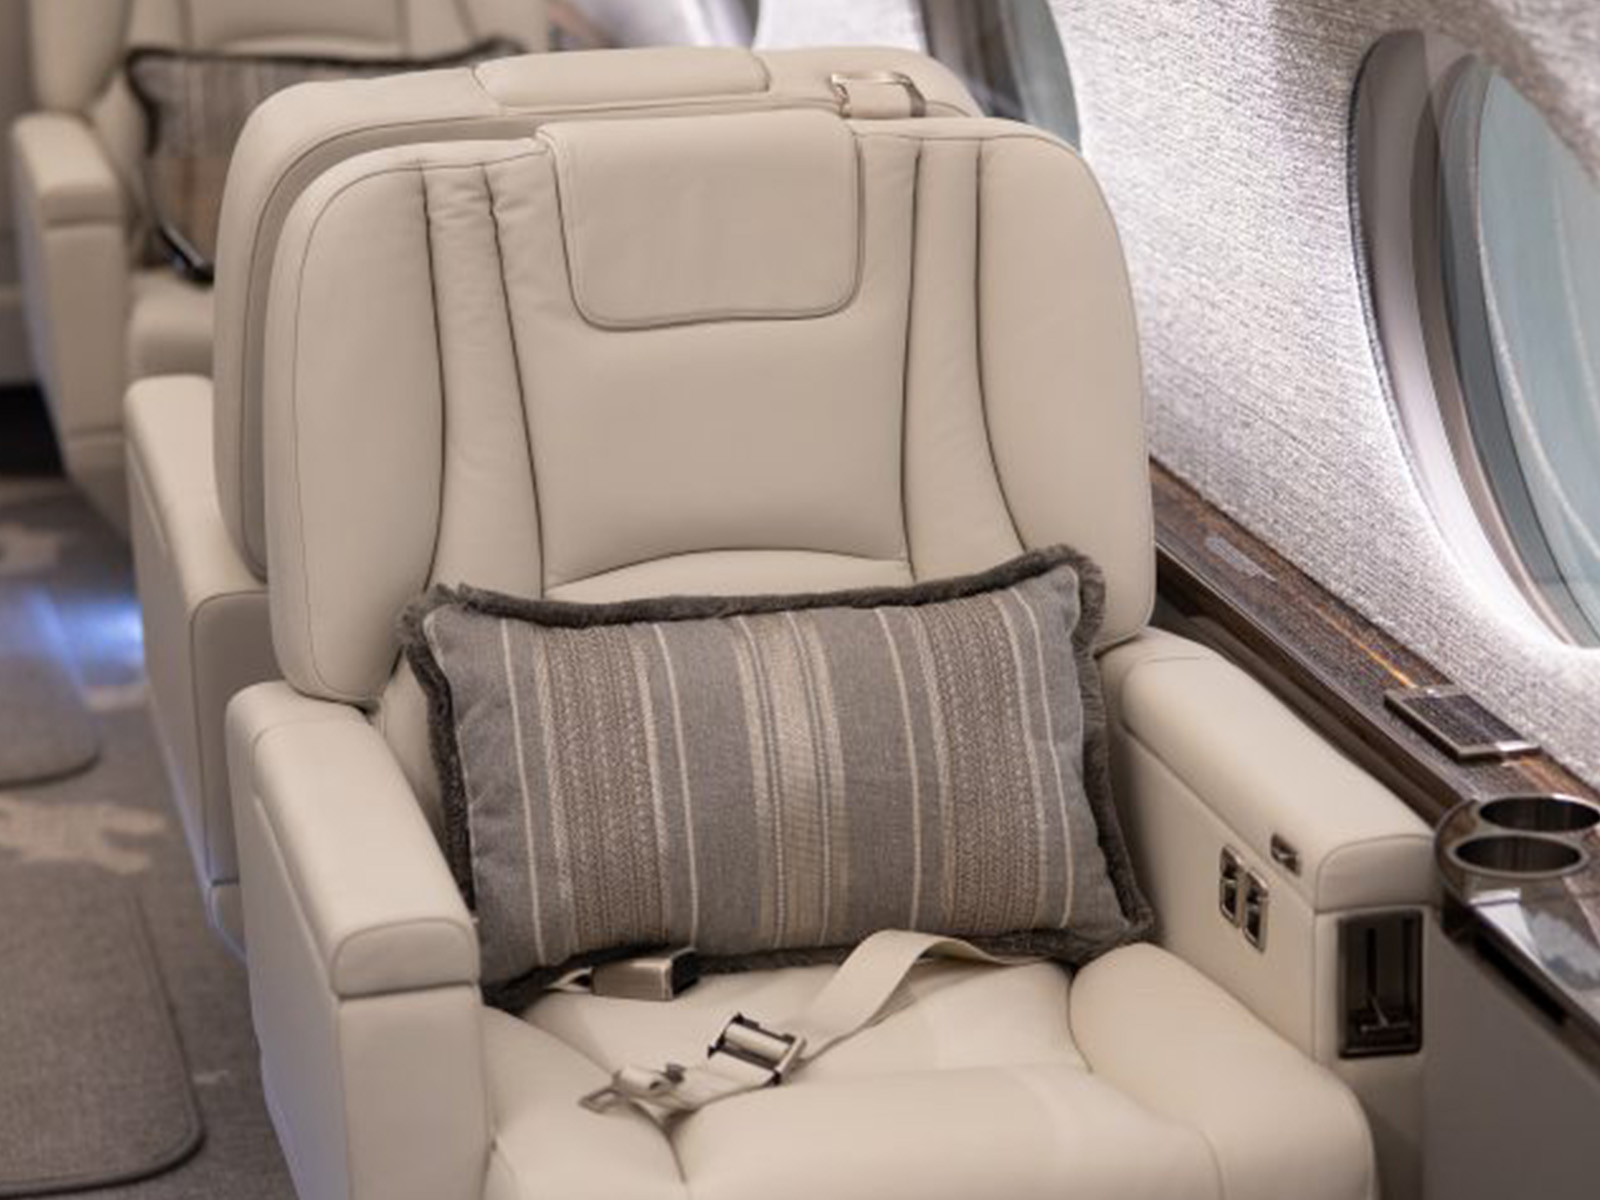 aircraft chair with a pillow